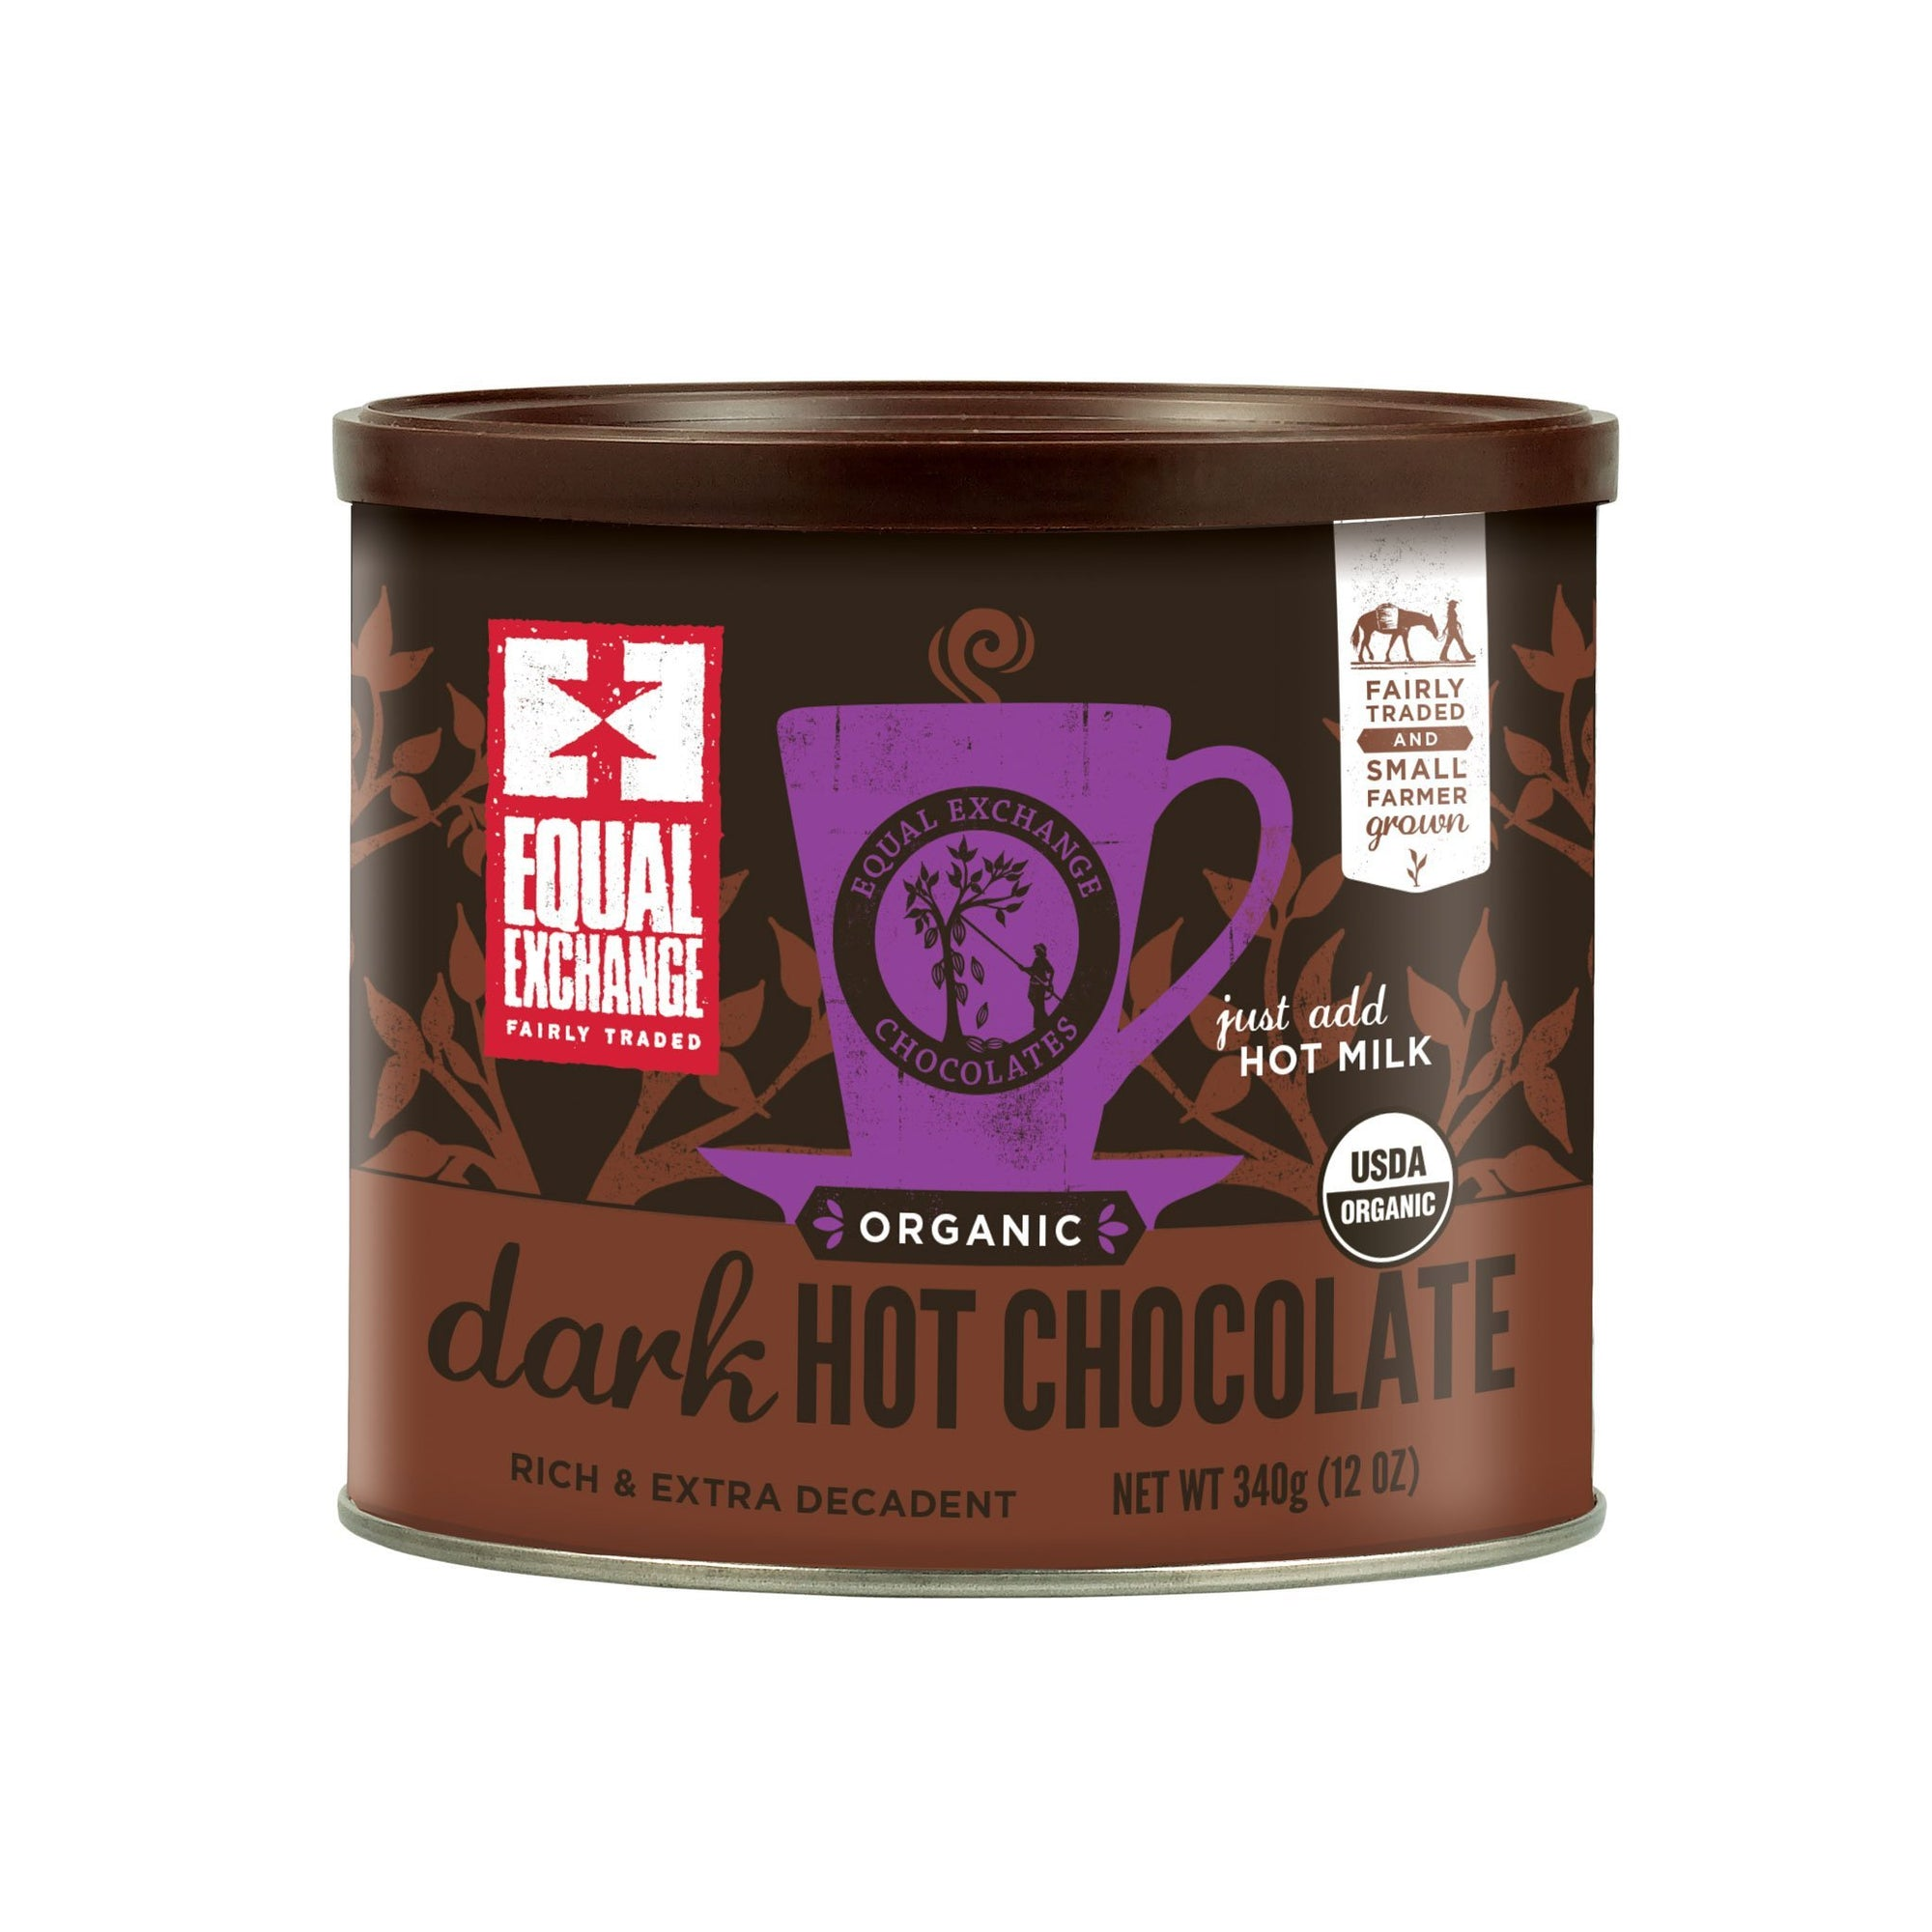 ORGANIC DARK HOT CHOCOLATE MIX - 12 OZ )IS)